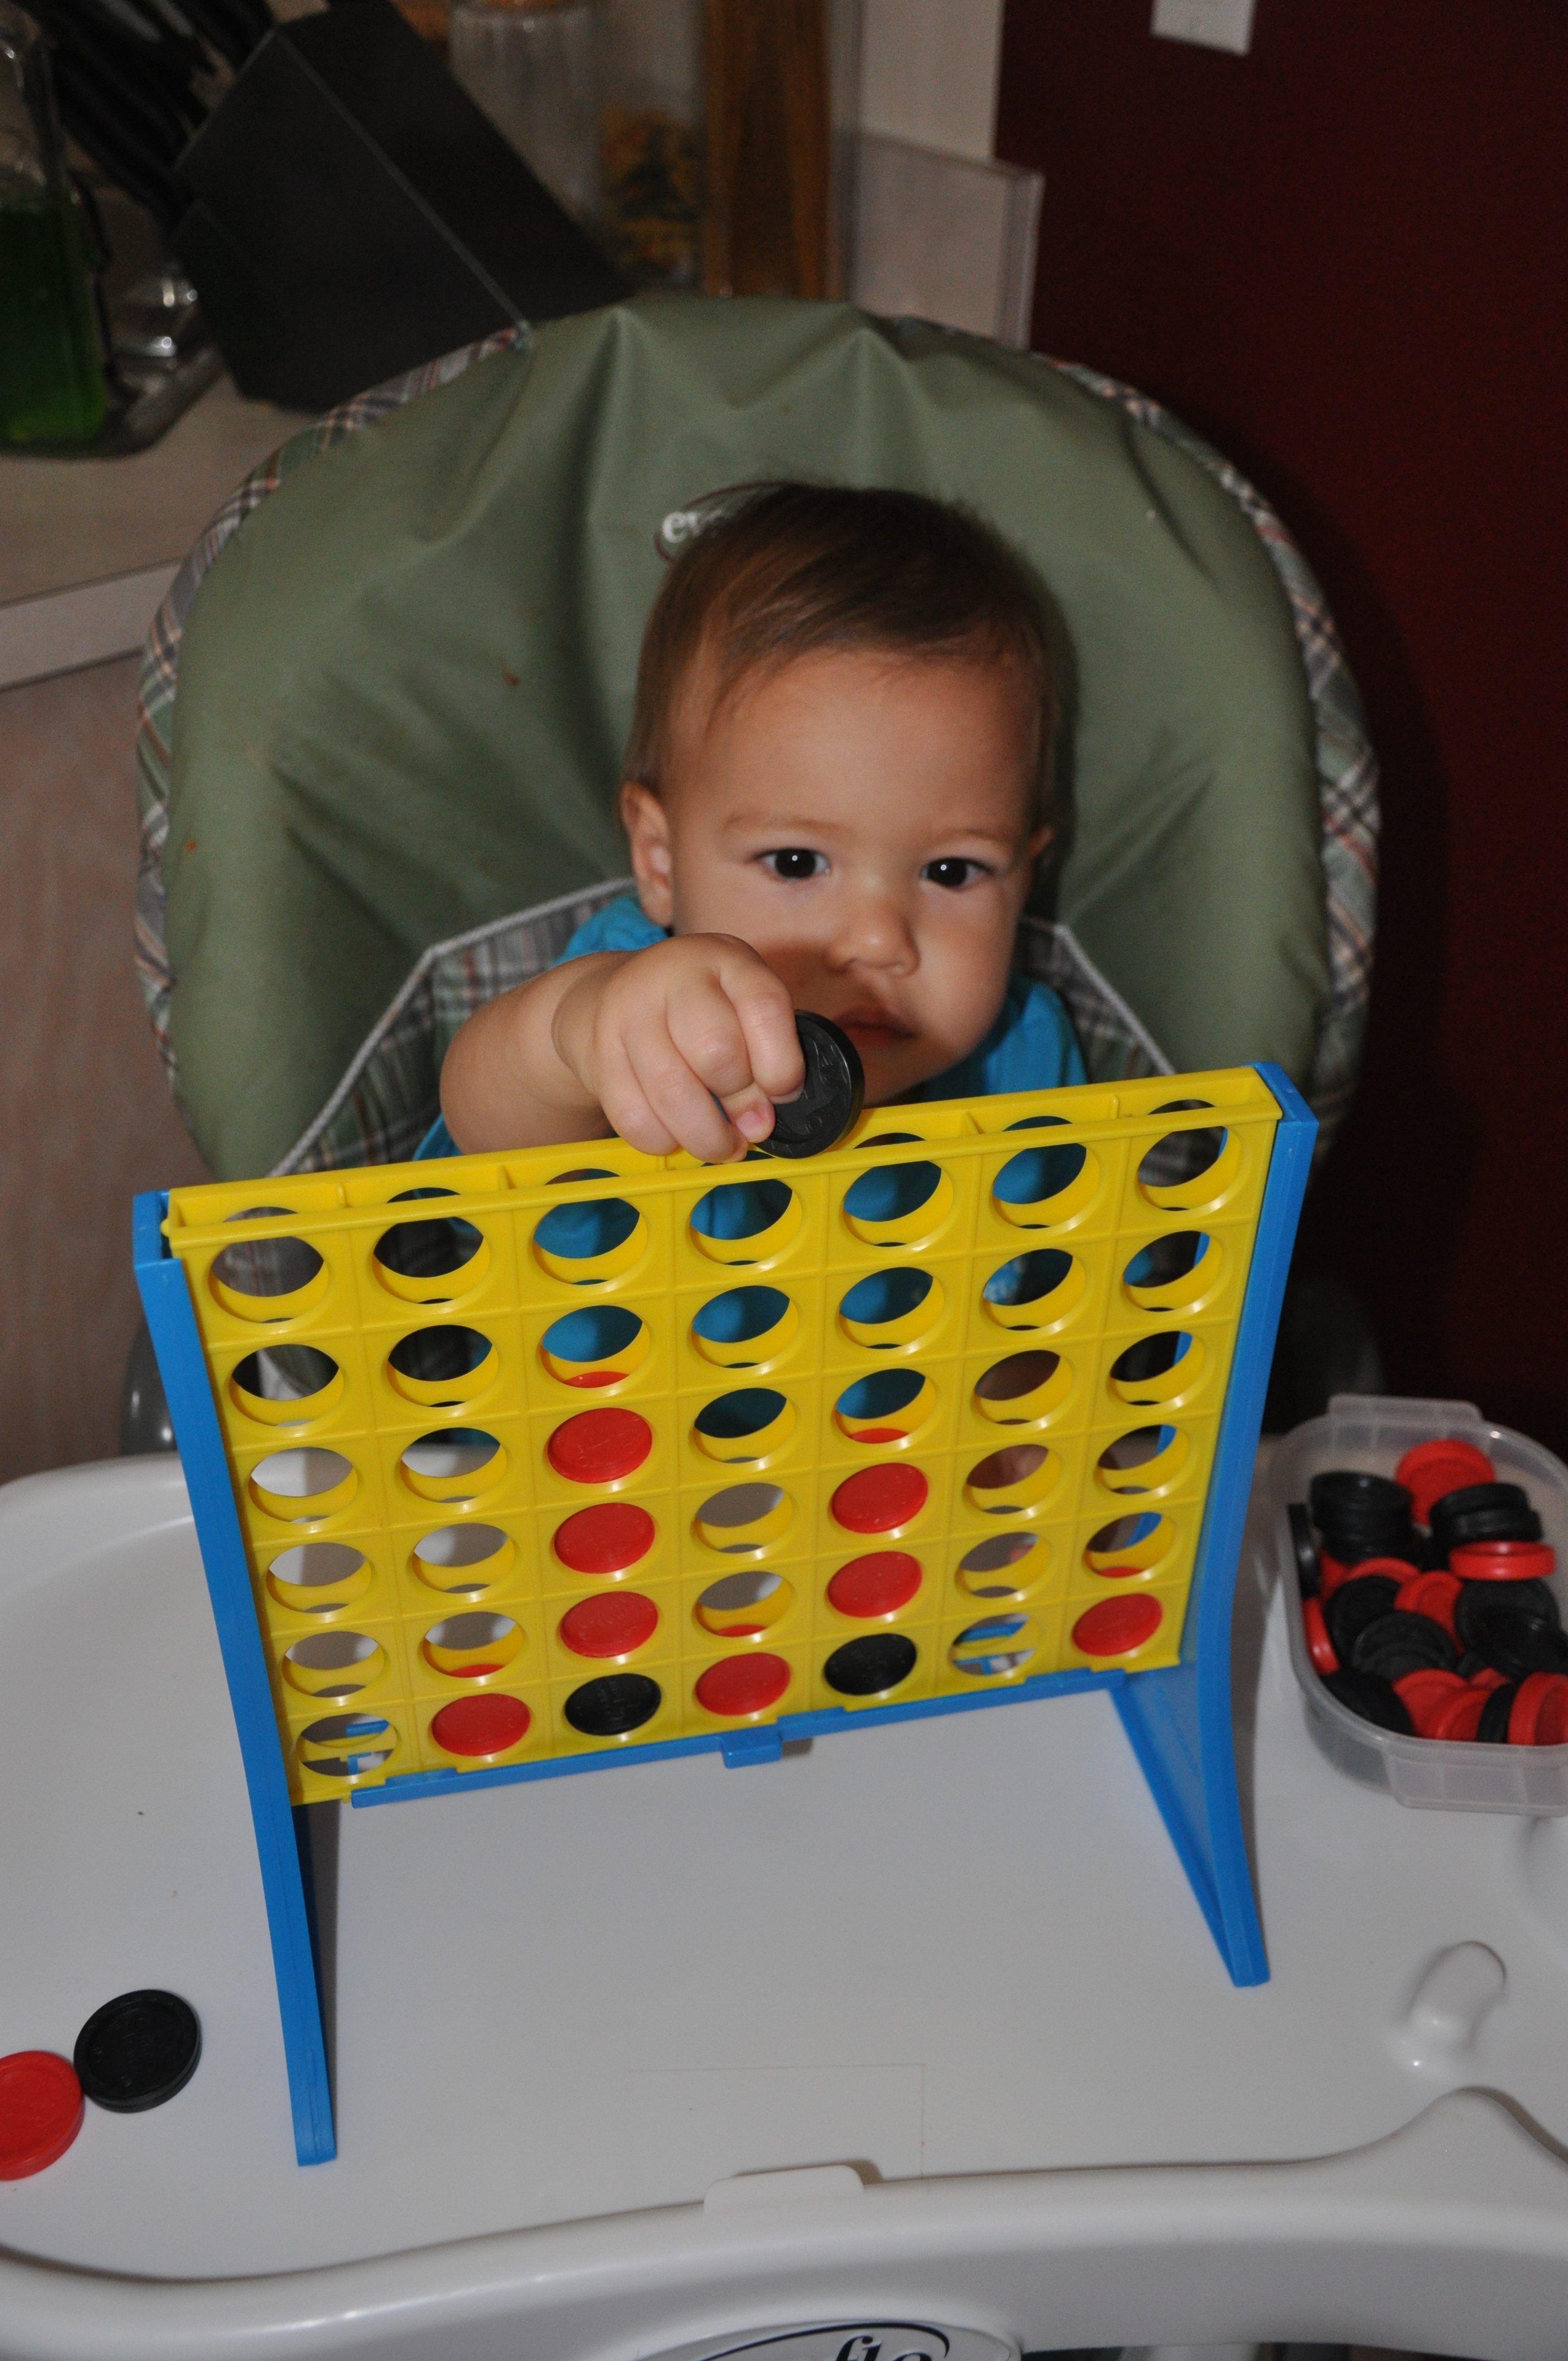 Connect four fun engaging activities for toddlers for Motor skills for toddlers